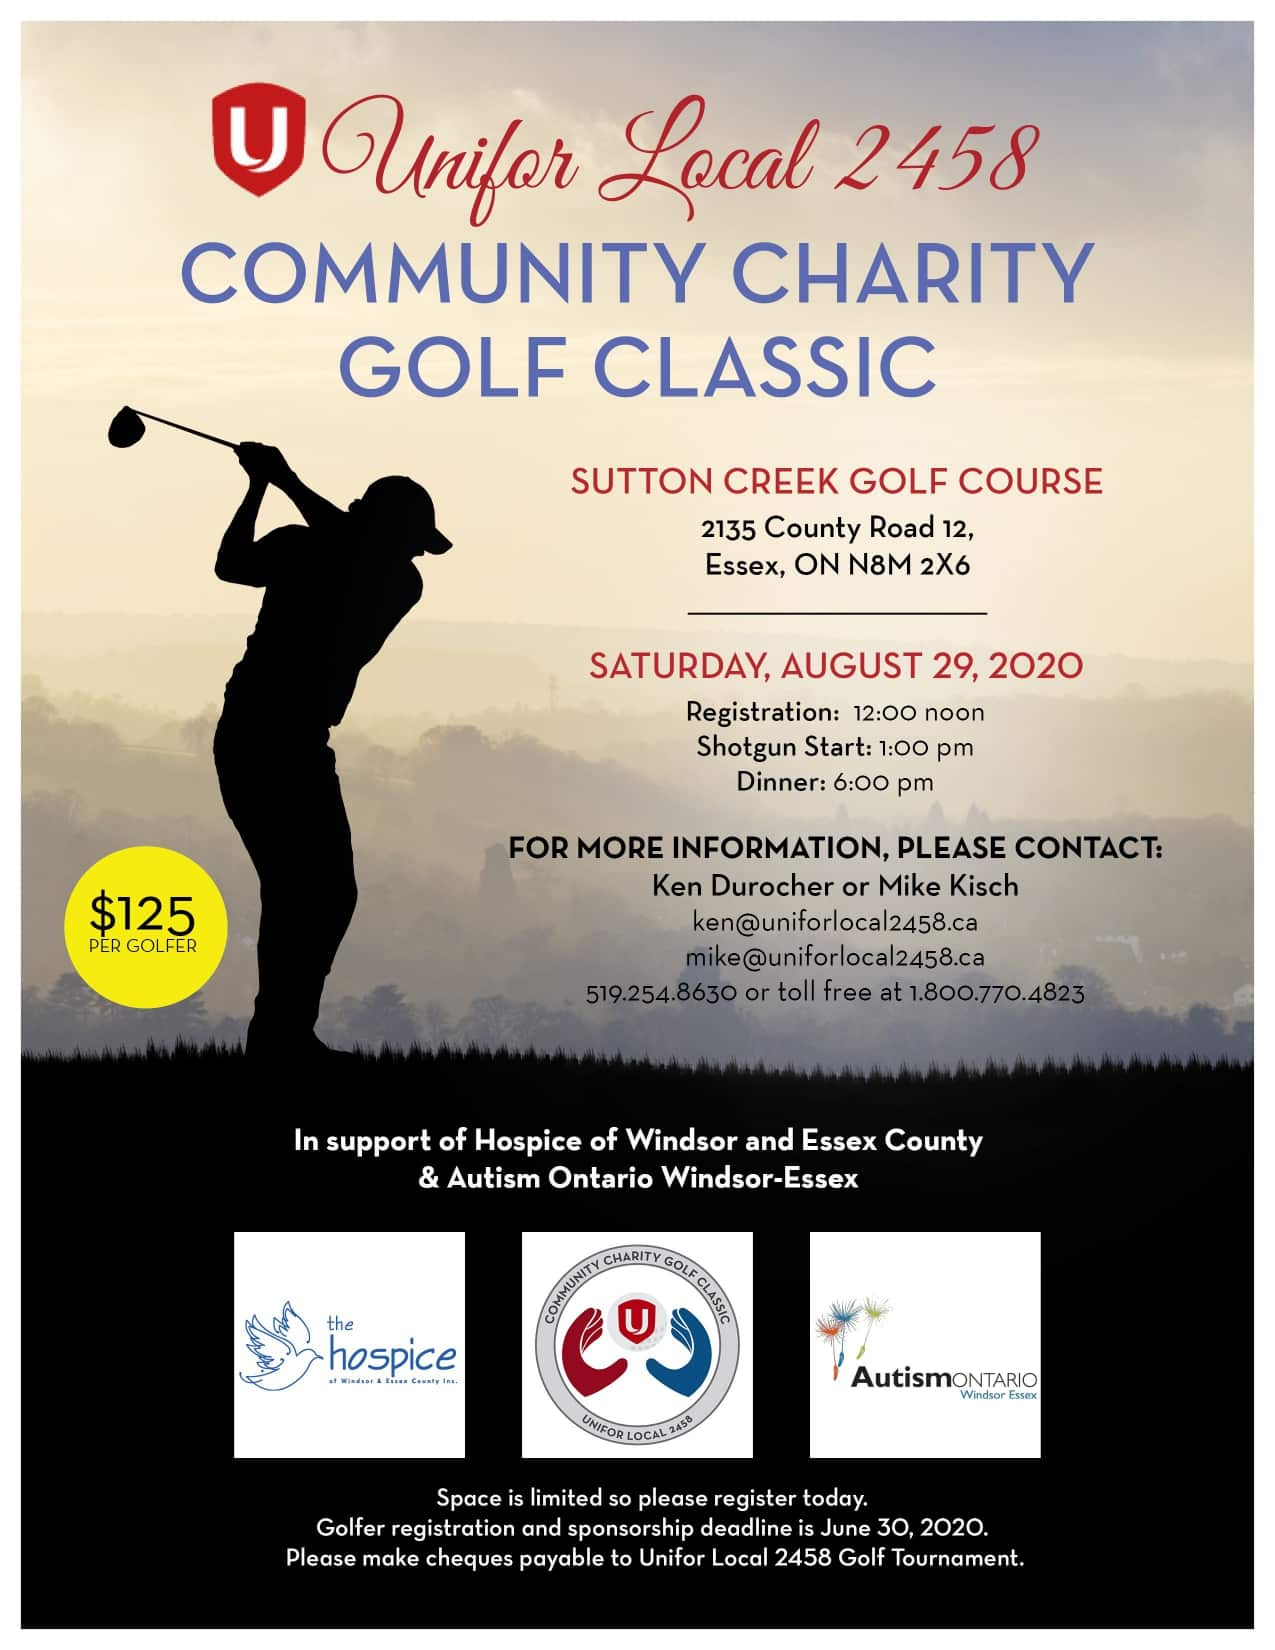 2020 Community Charity Golf Classic Flyer_page-0001